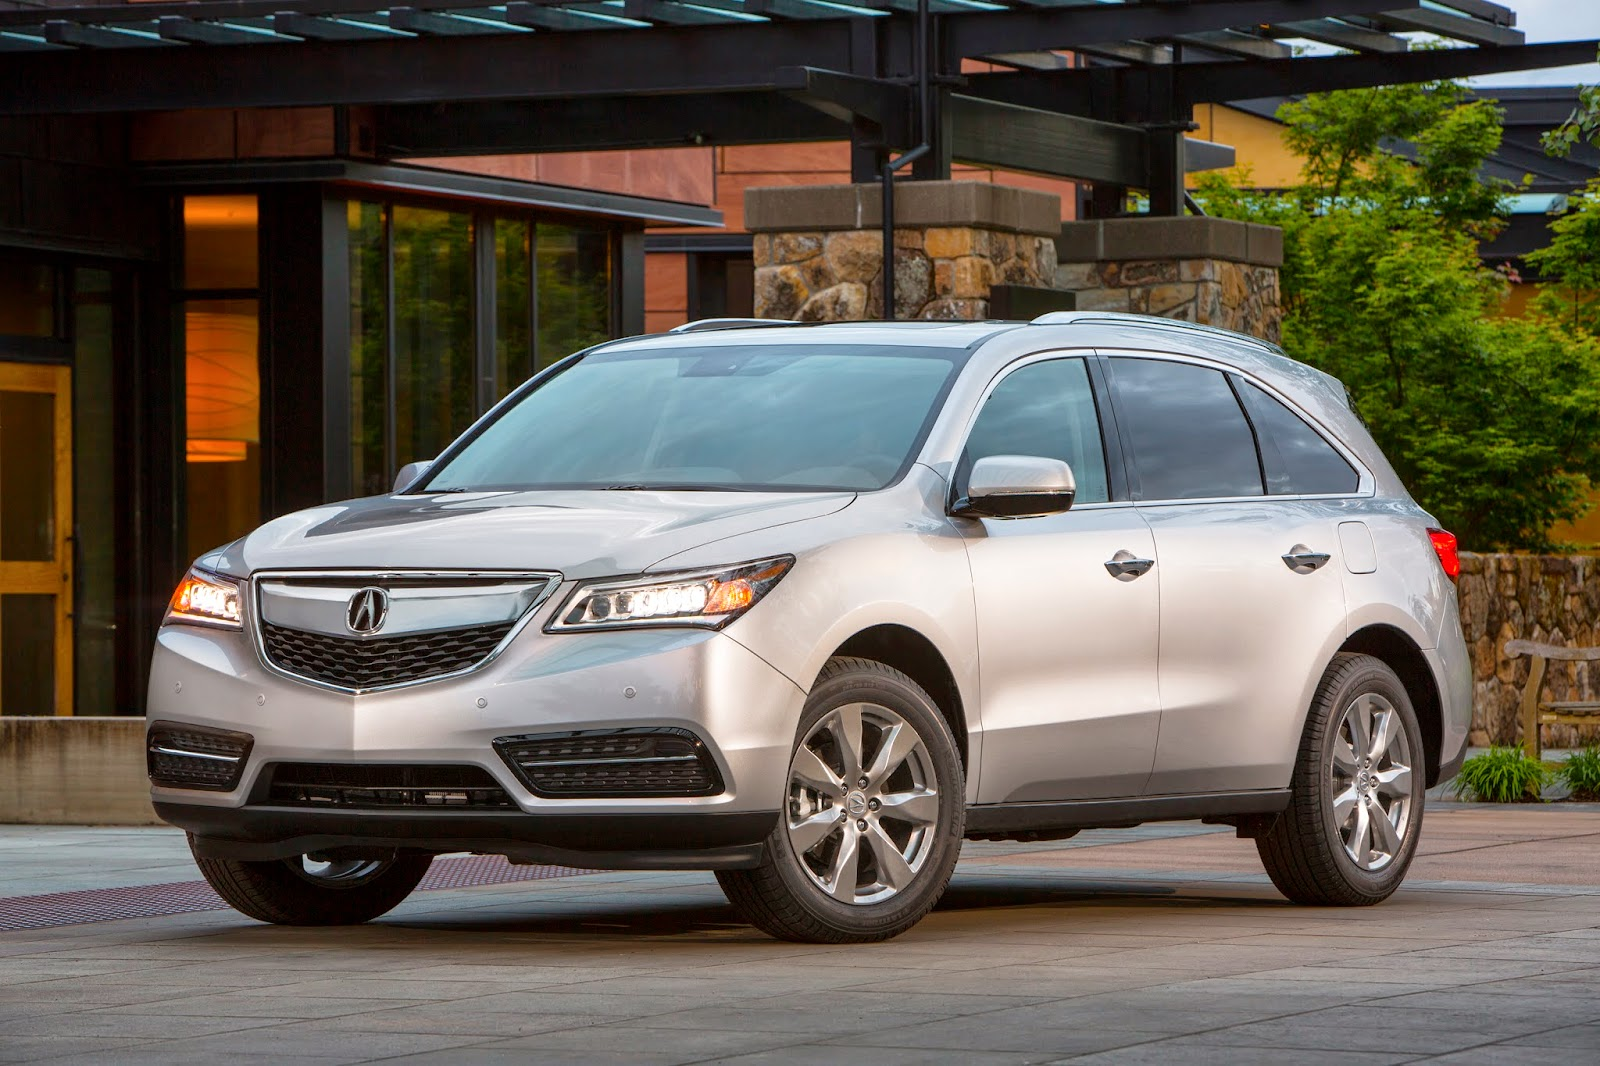 Front 3/4 view of 2014 Acura MDX